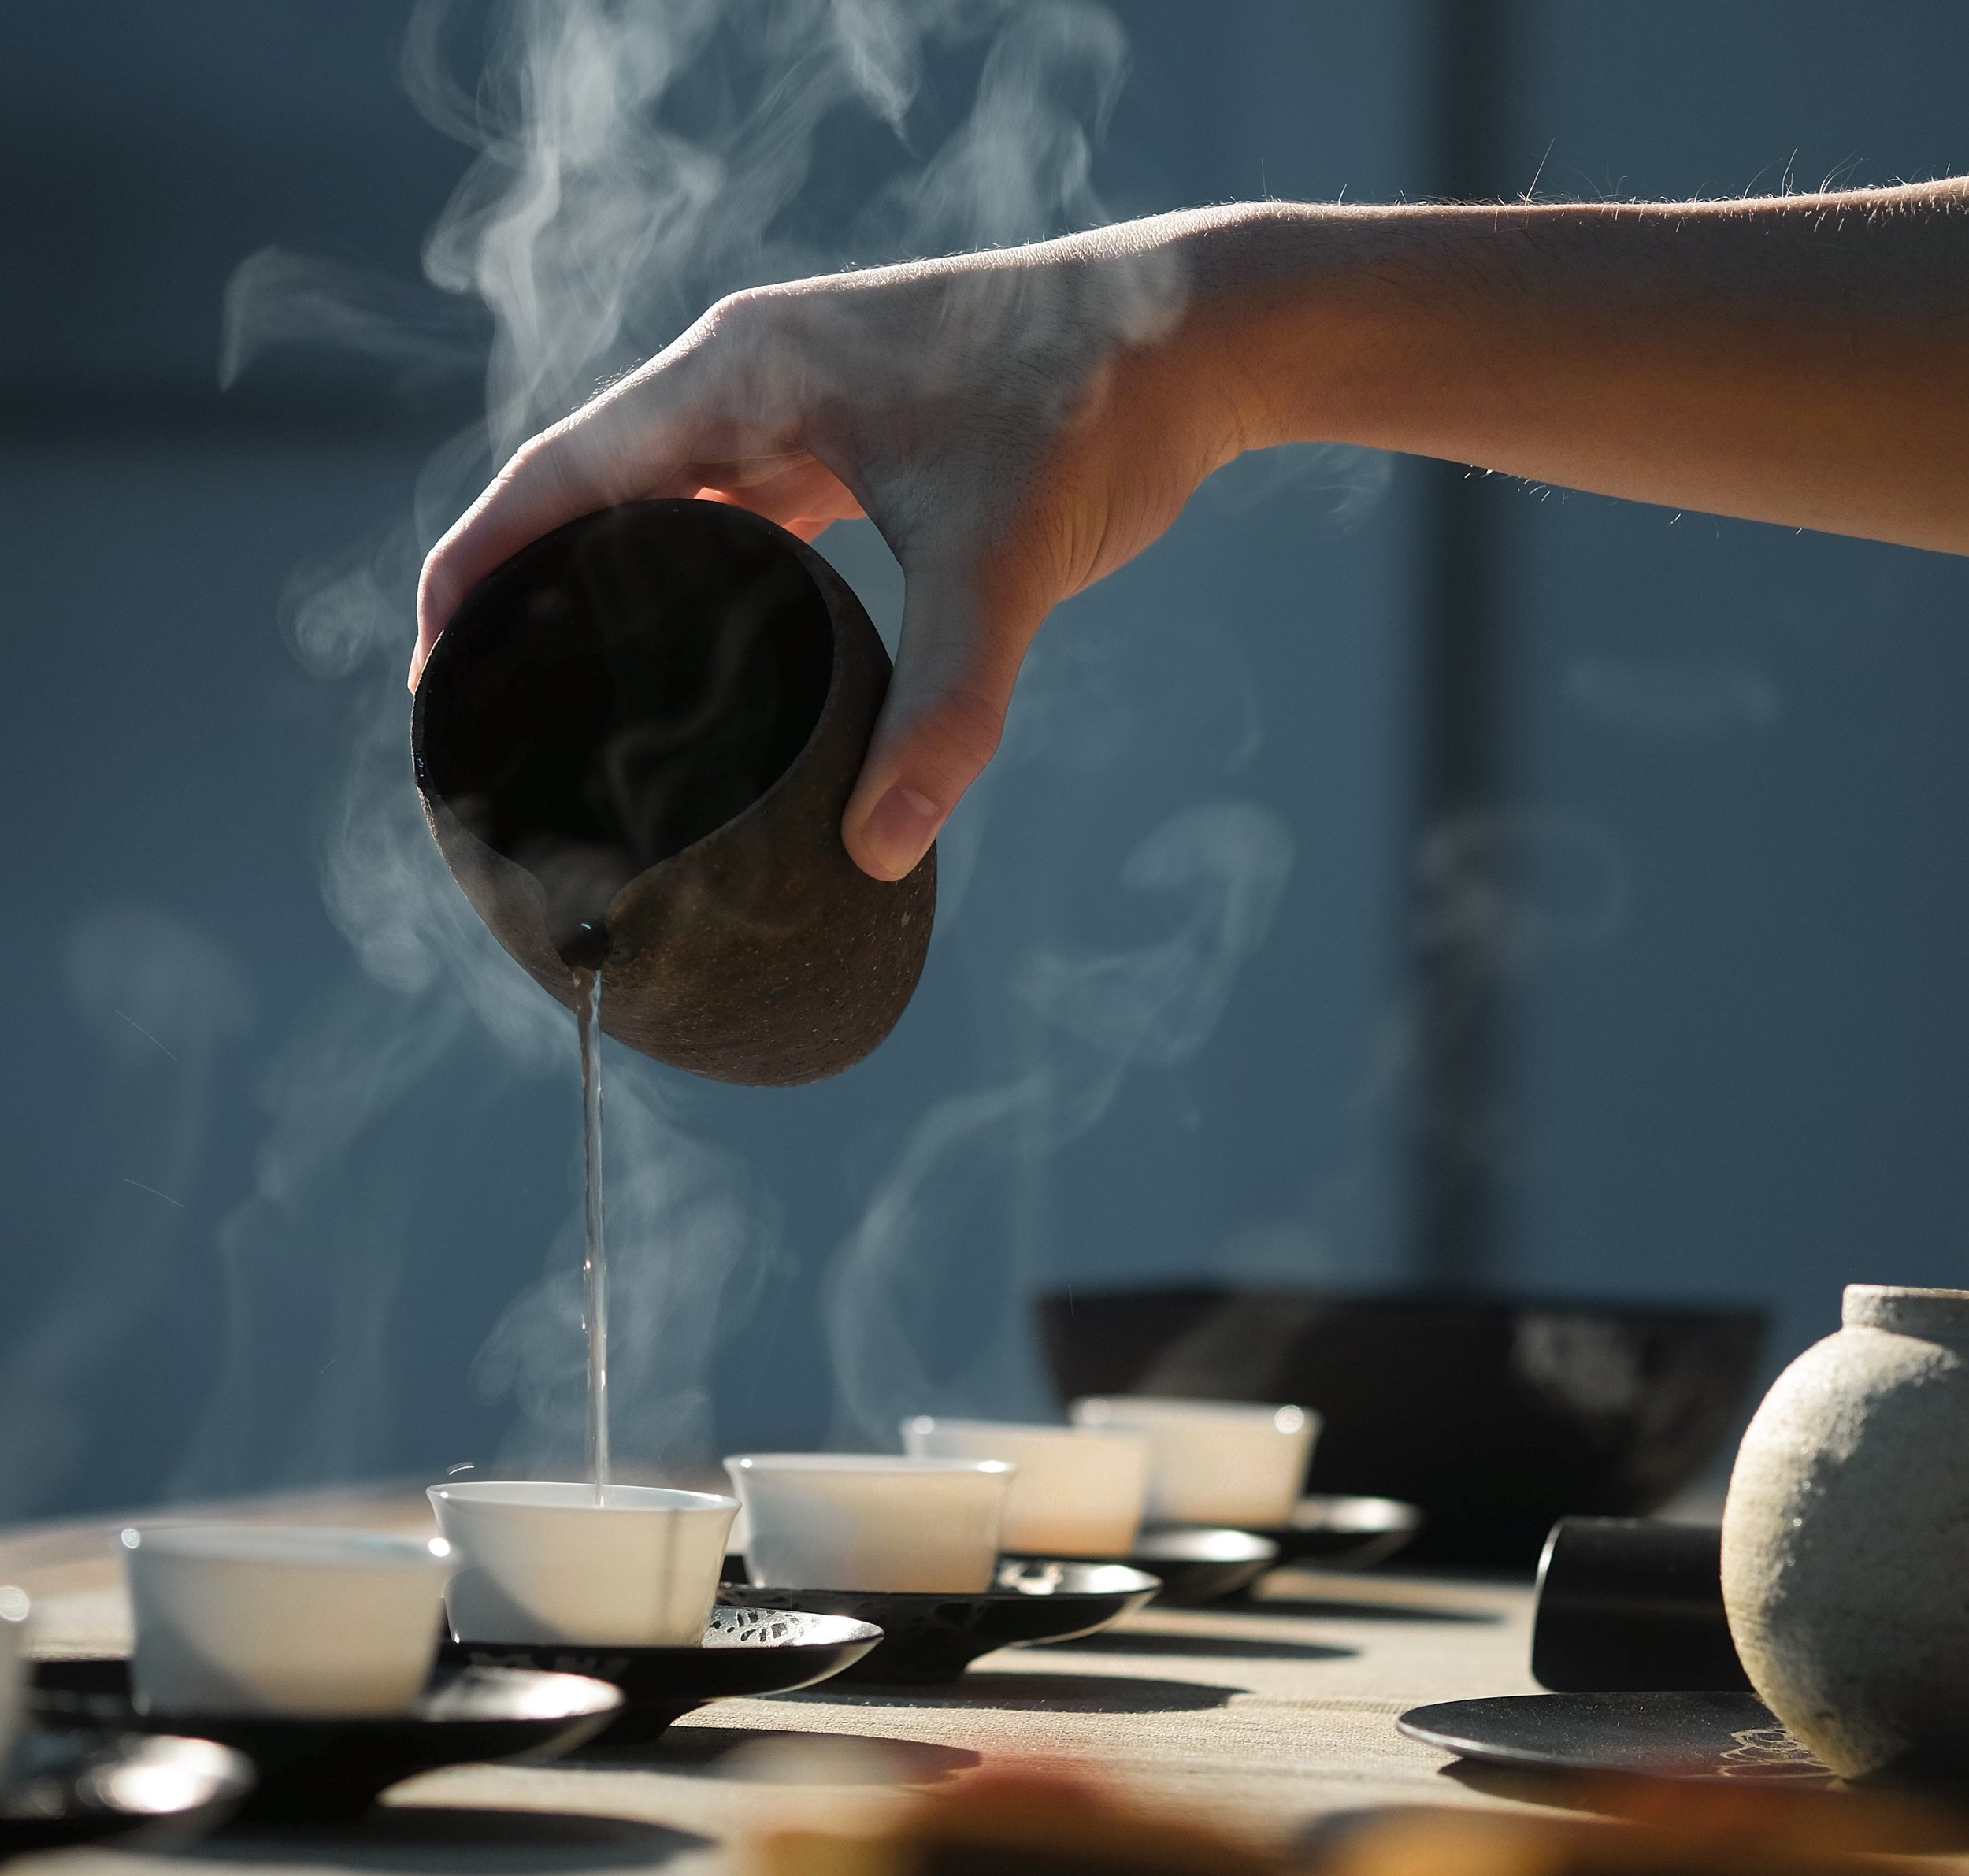 Preparation - Bring water to boil then add one pinch of herbal tea per cup. Turn heat off and cover. Infuse for up to 10 minutes.